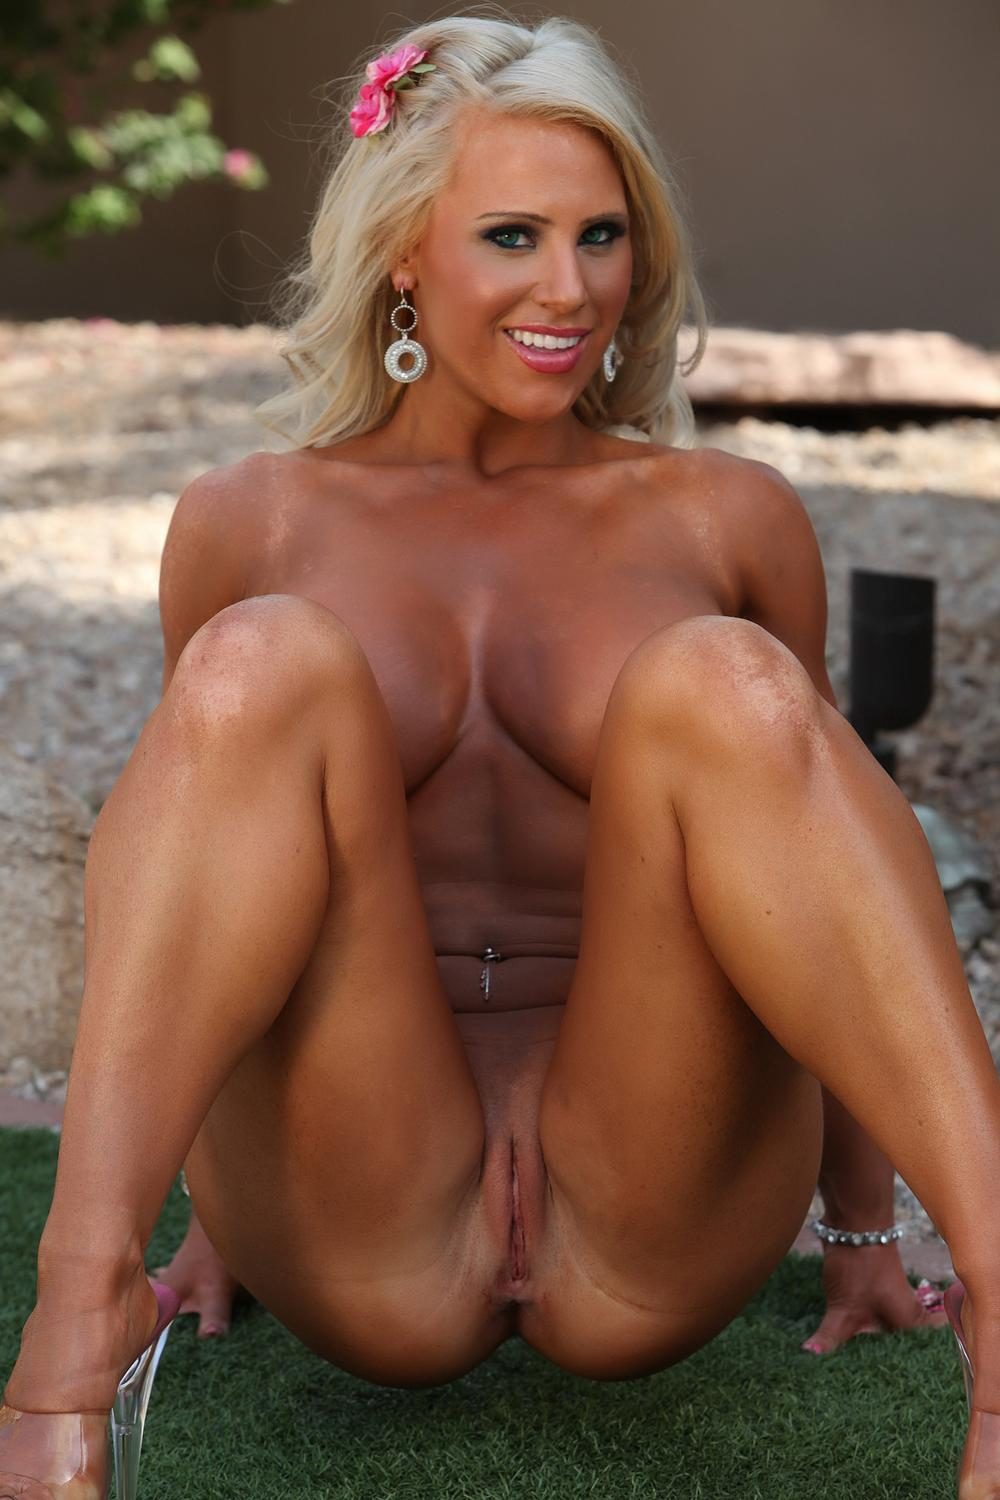 free cam online gust israel chat room #blonde #muscle #meganavalon #legsopen #smoothpussy #shavedpussy #piercednavel #muscularlegs #pussyslit #tanned